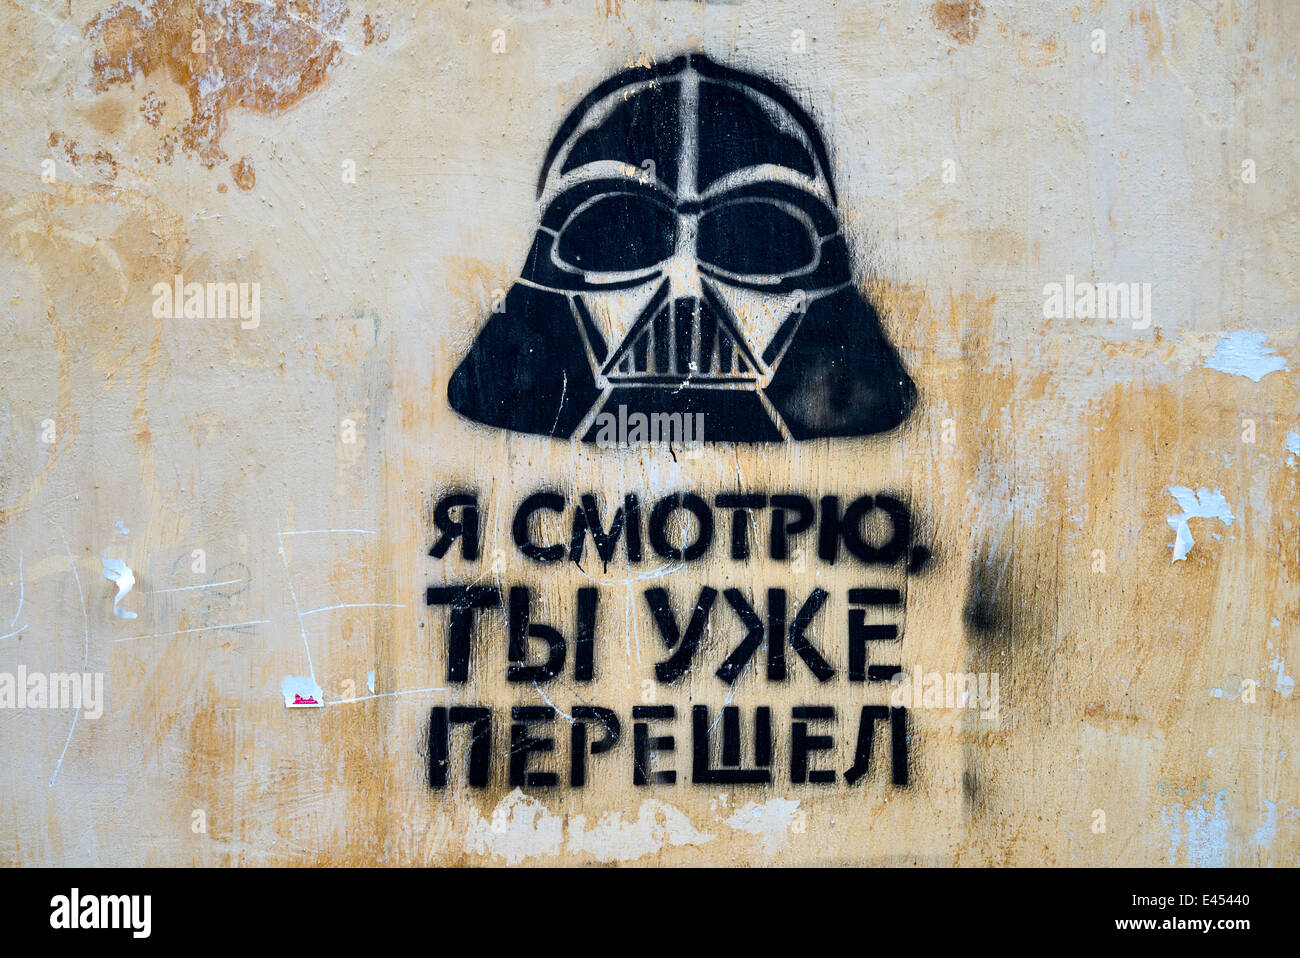 Darth Vader graffiti on building in Chernivtsi, Bukovina Region ...